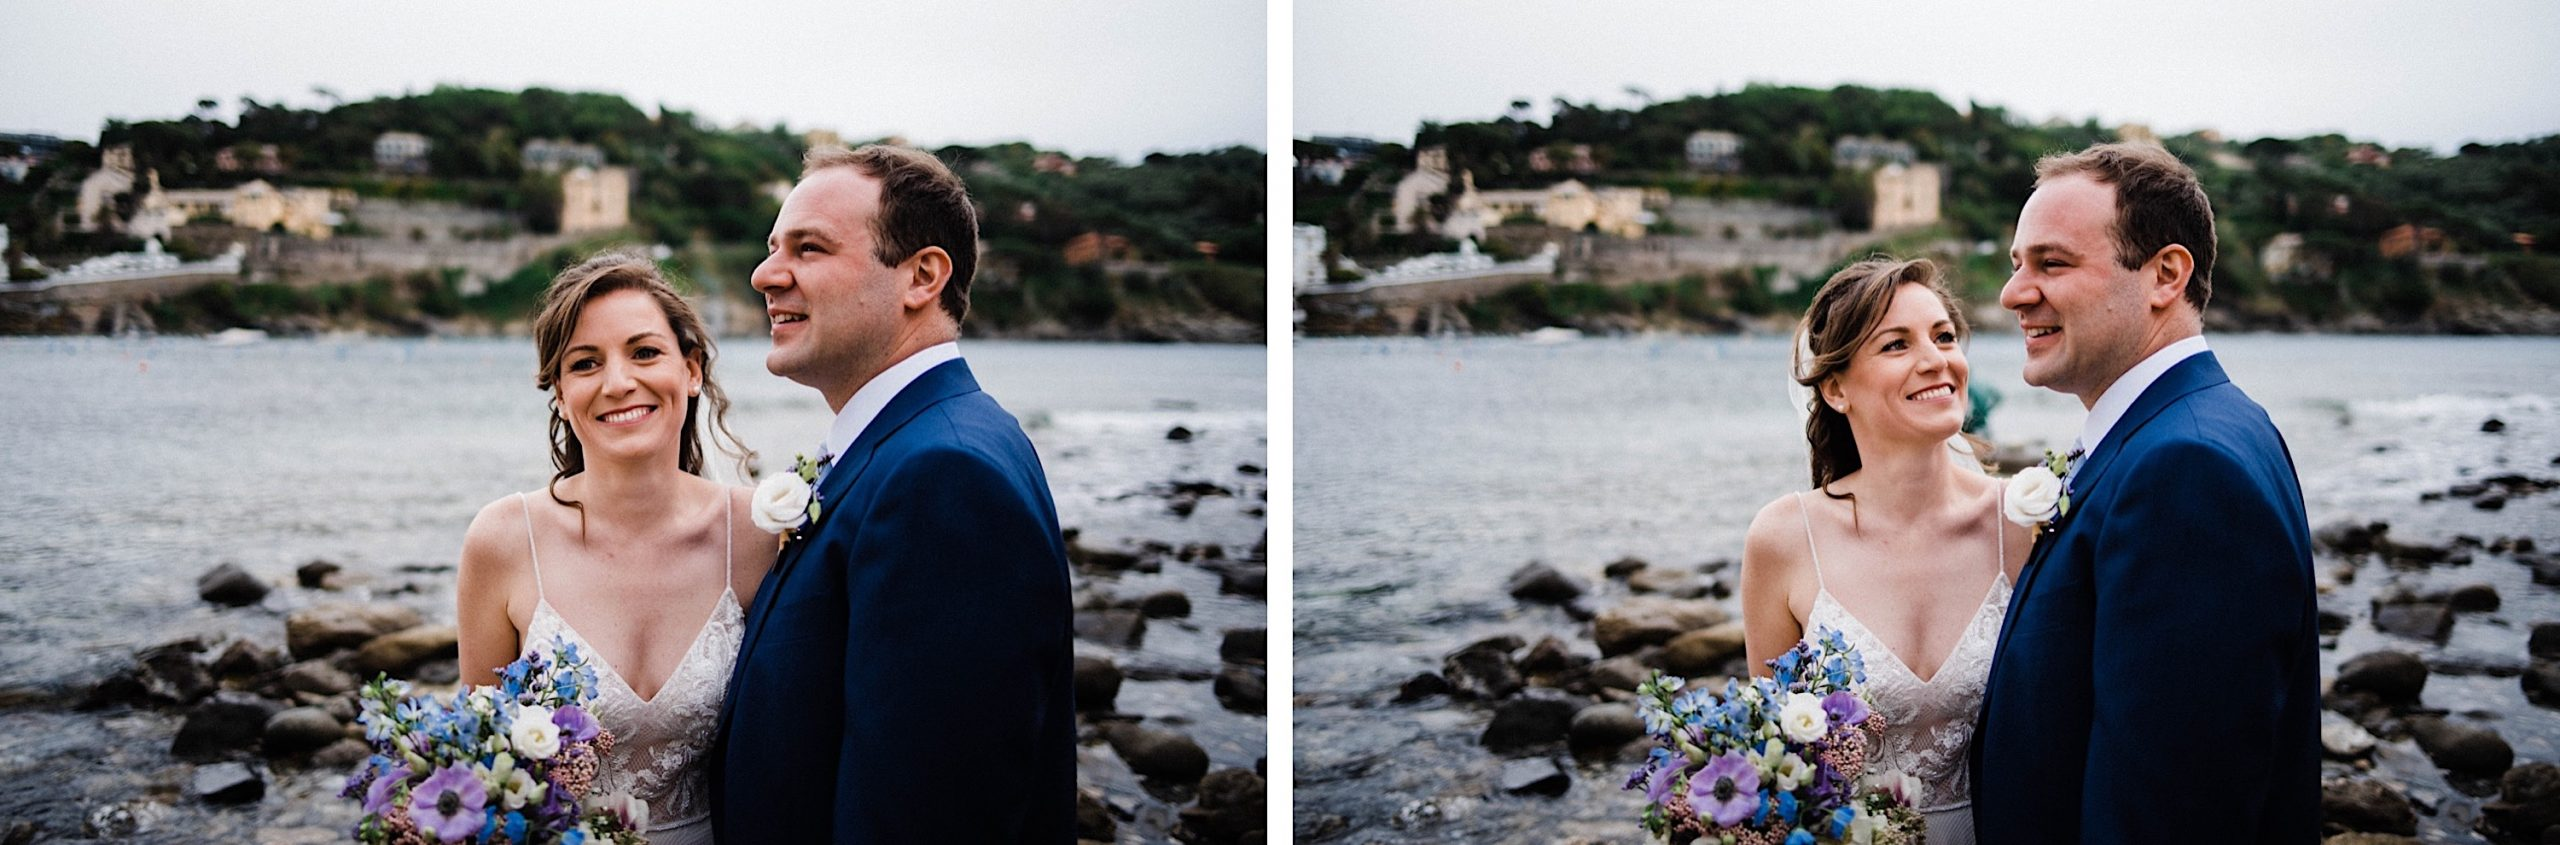 Two destination wedding portraits of a bride & groom laughing in front of the Bay of Silence in Sestri Levante.